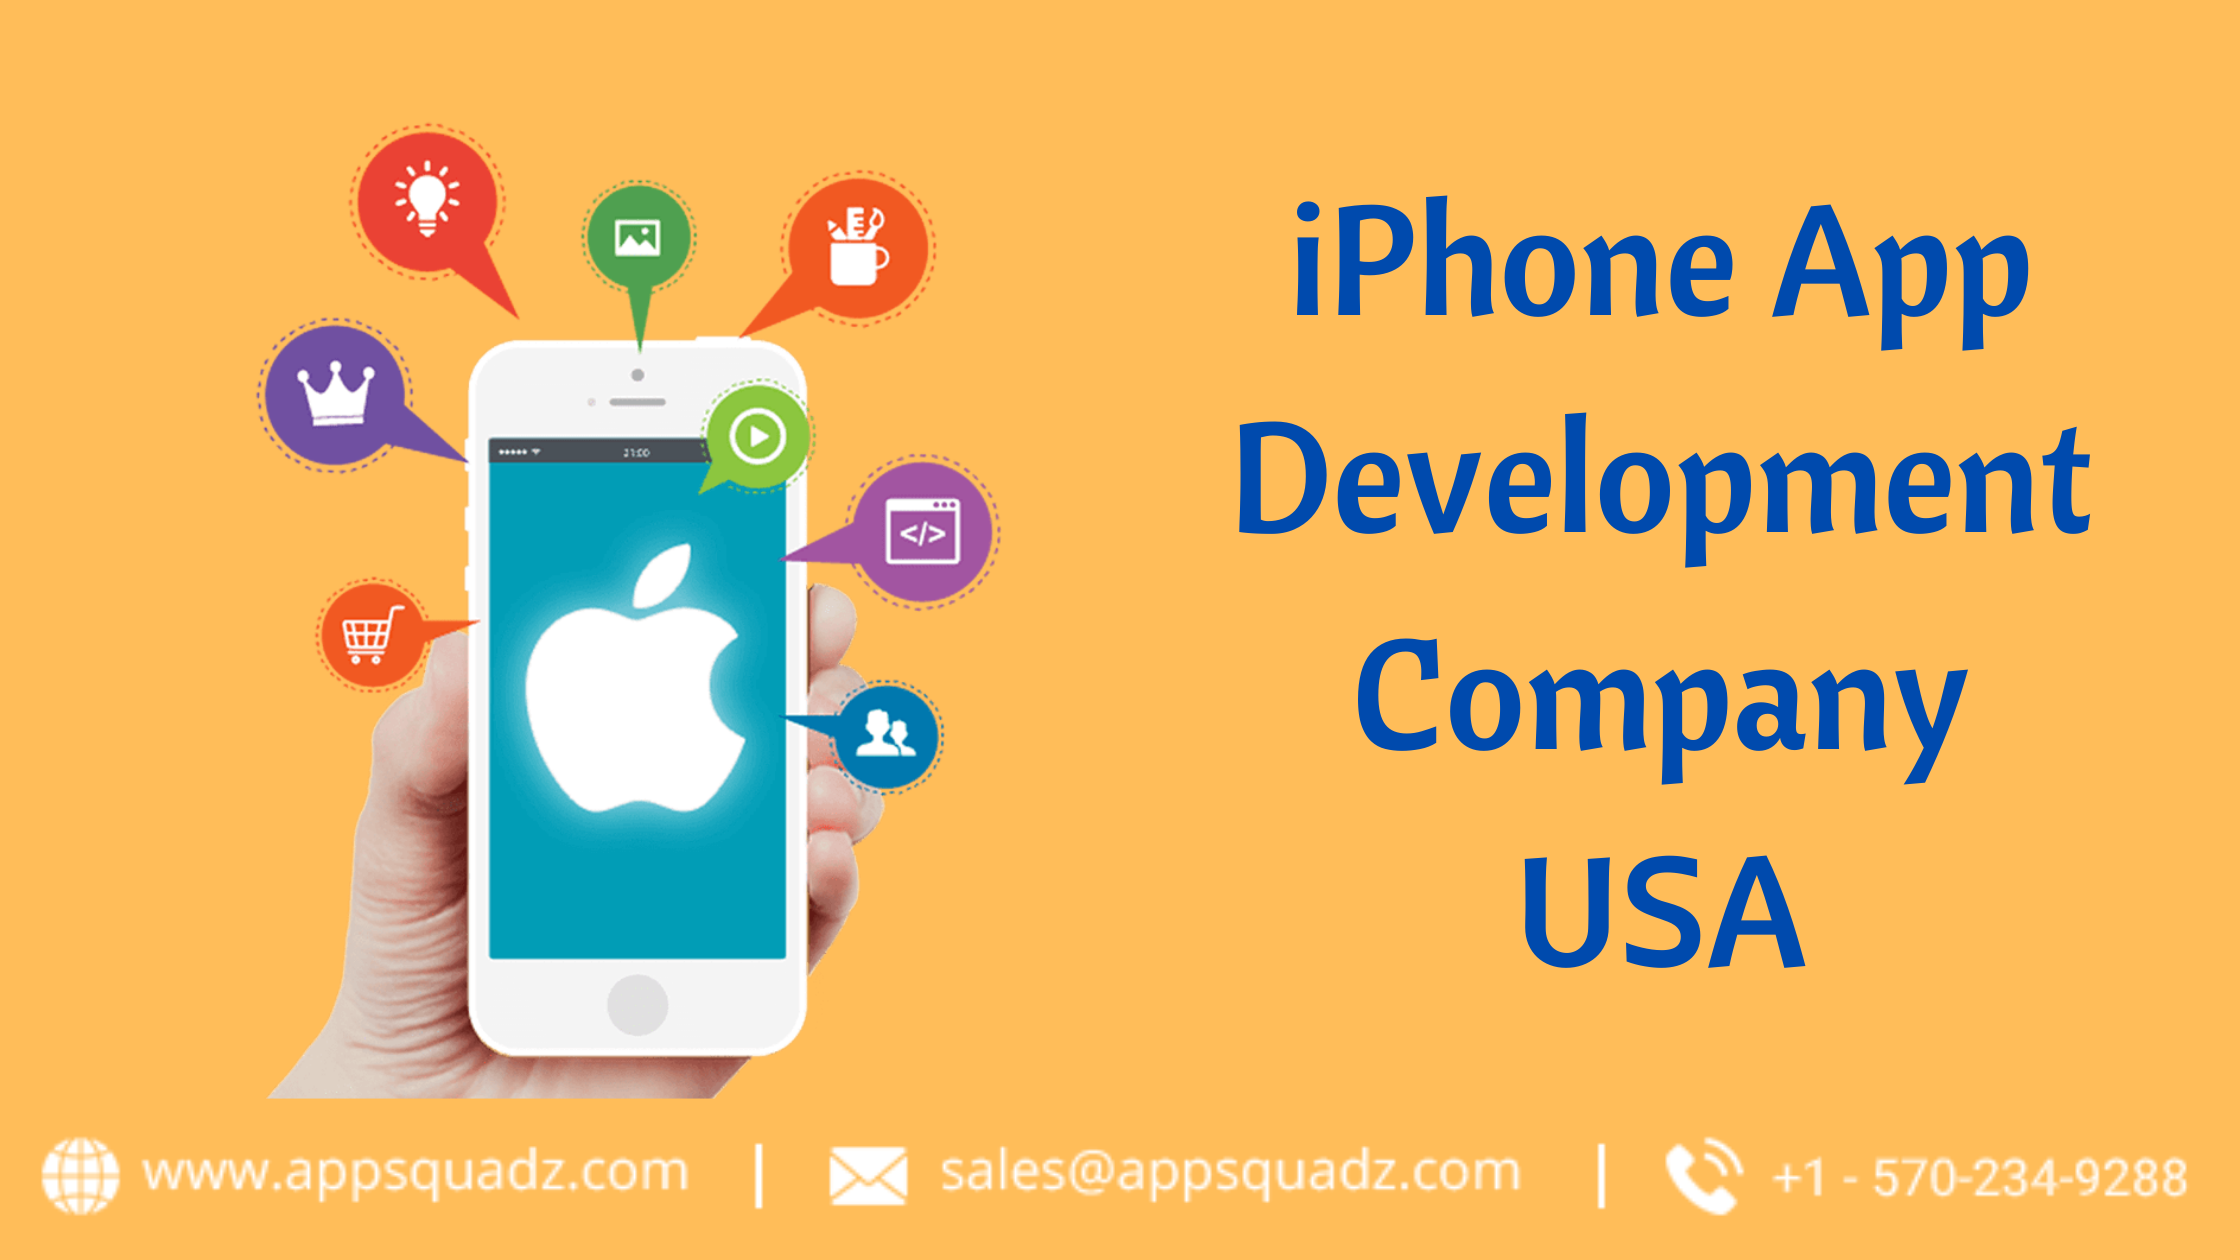 iPhone App Development Company USA is Providing Best Results in Software Programming